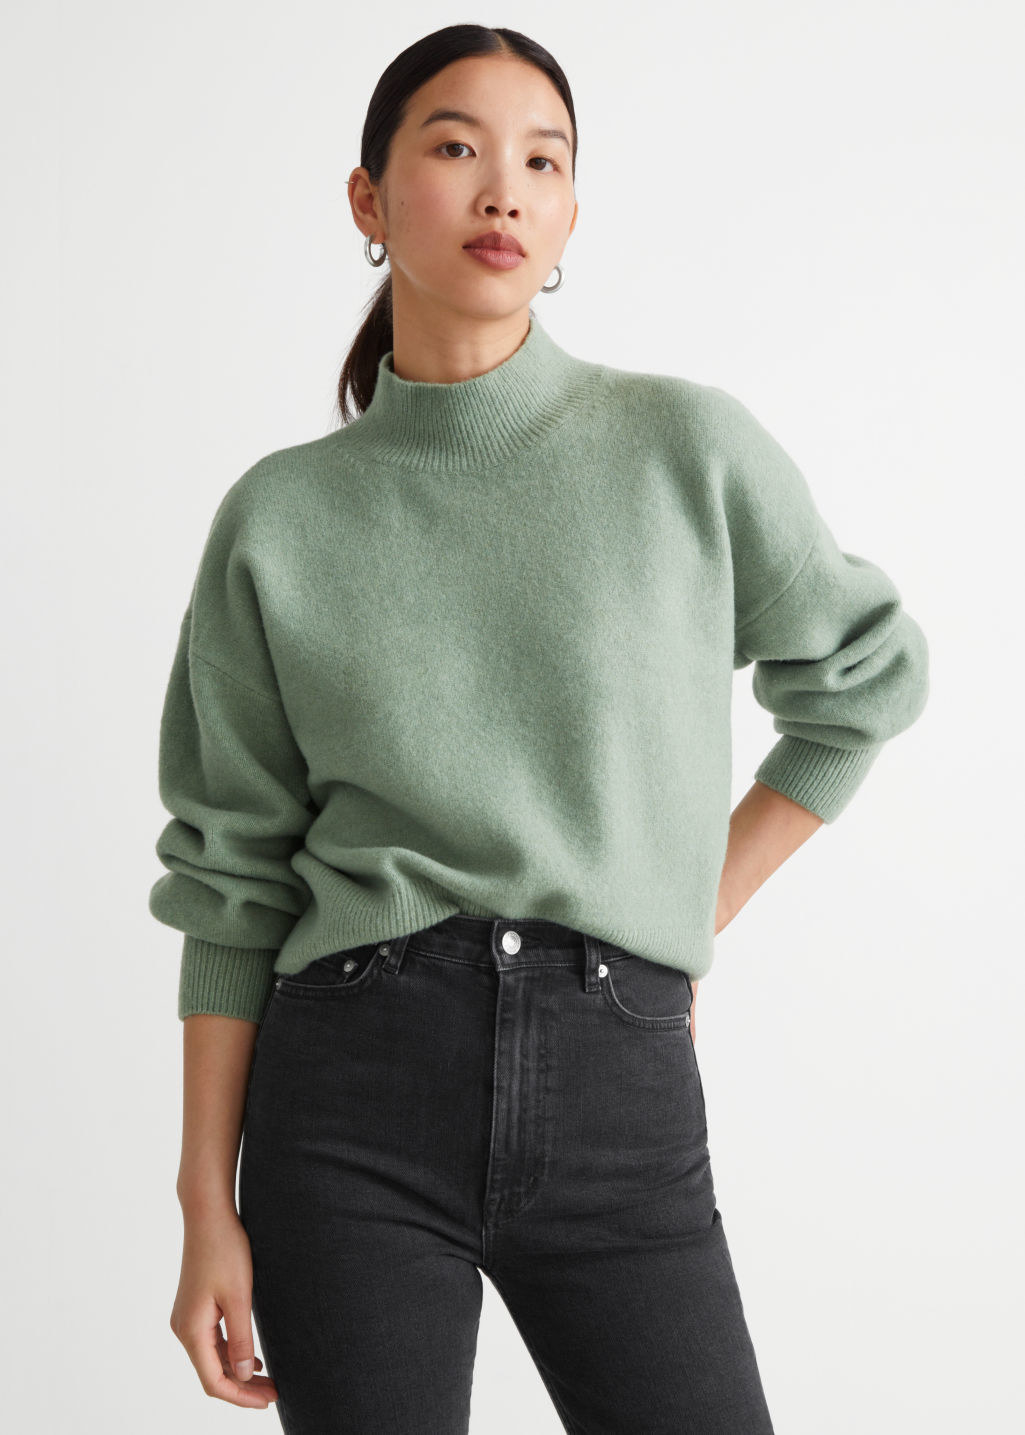 model wearing the high-neck sweater